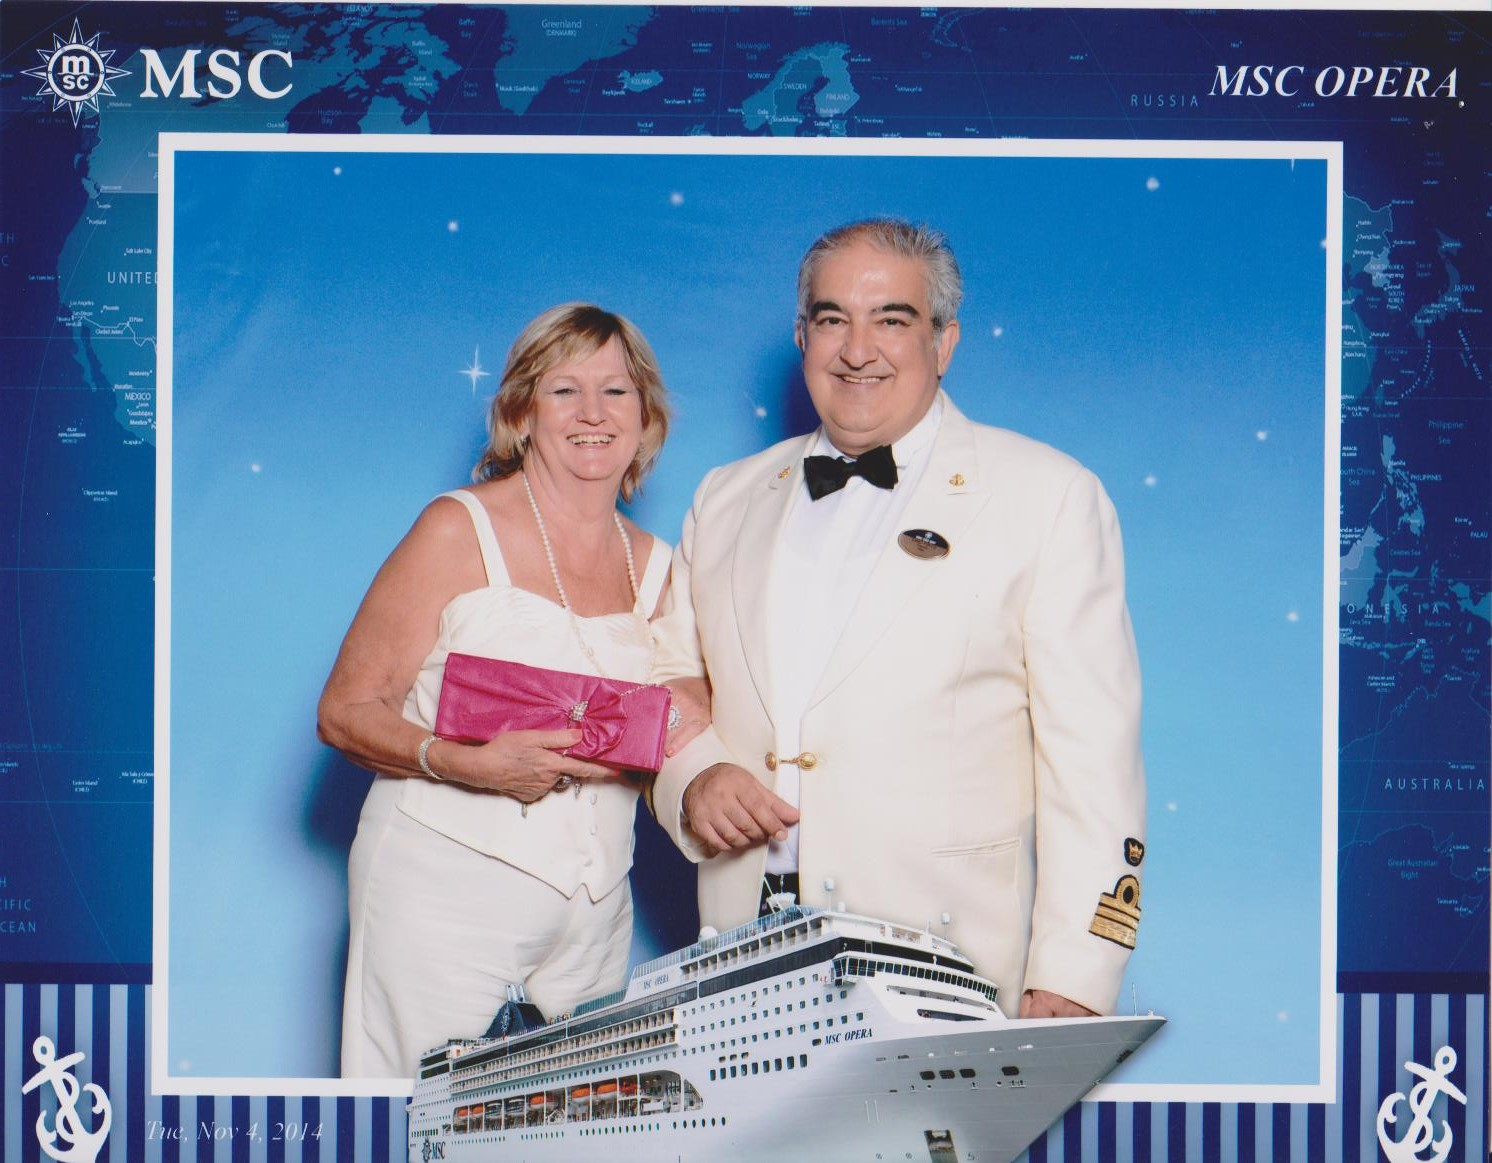 The captain of the MSC Opera standing next to a passenger